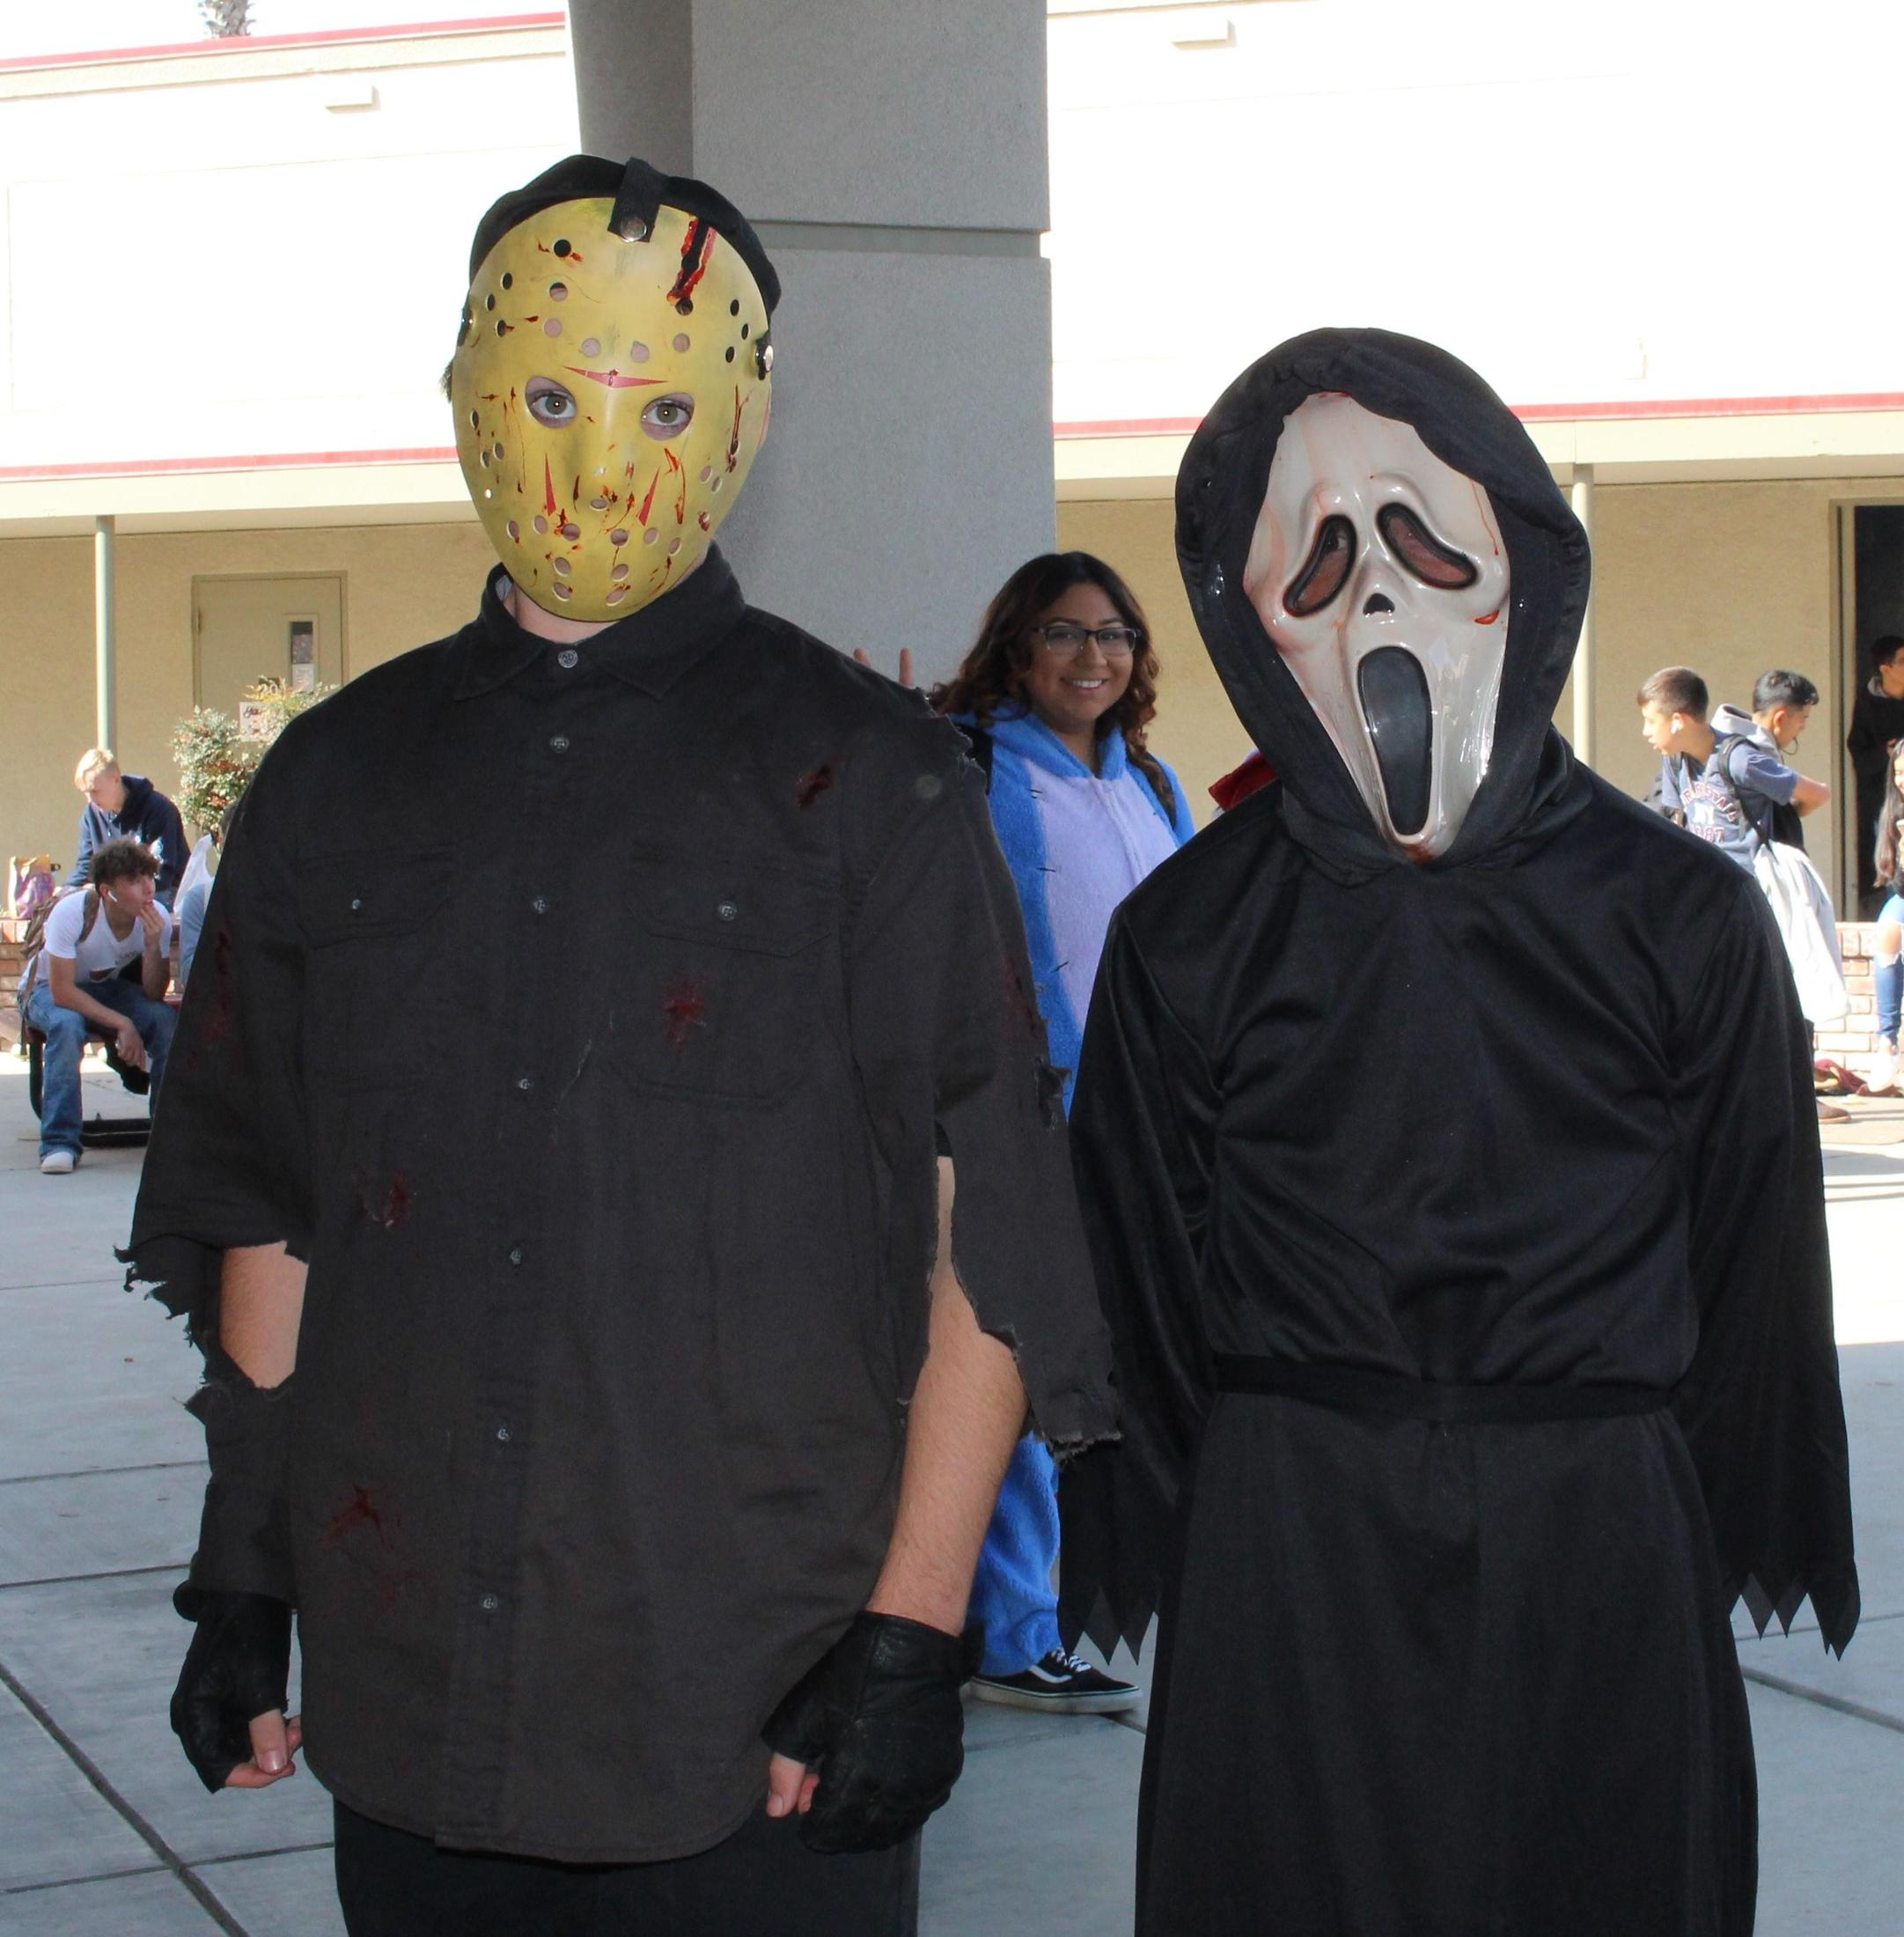 Thomas McGarvey as Jason Voorhees, Arely Jimenez, Nick Labour as Ghostface